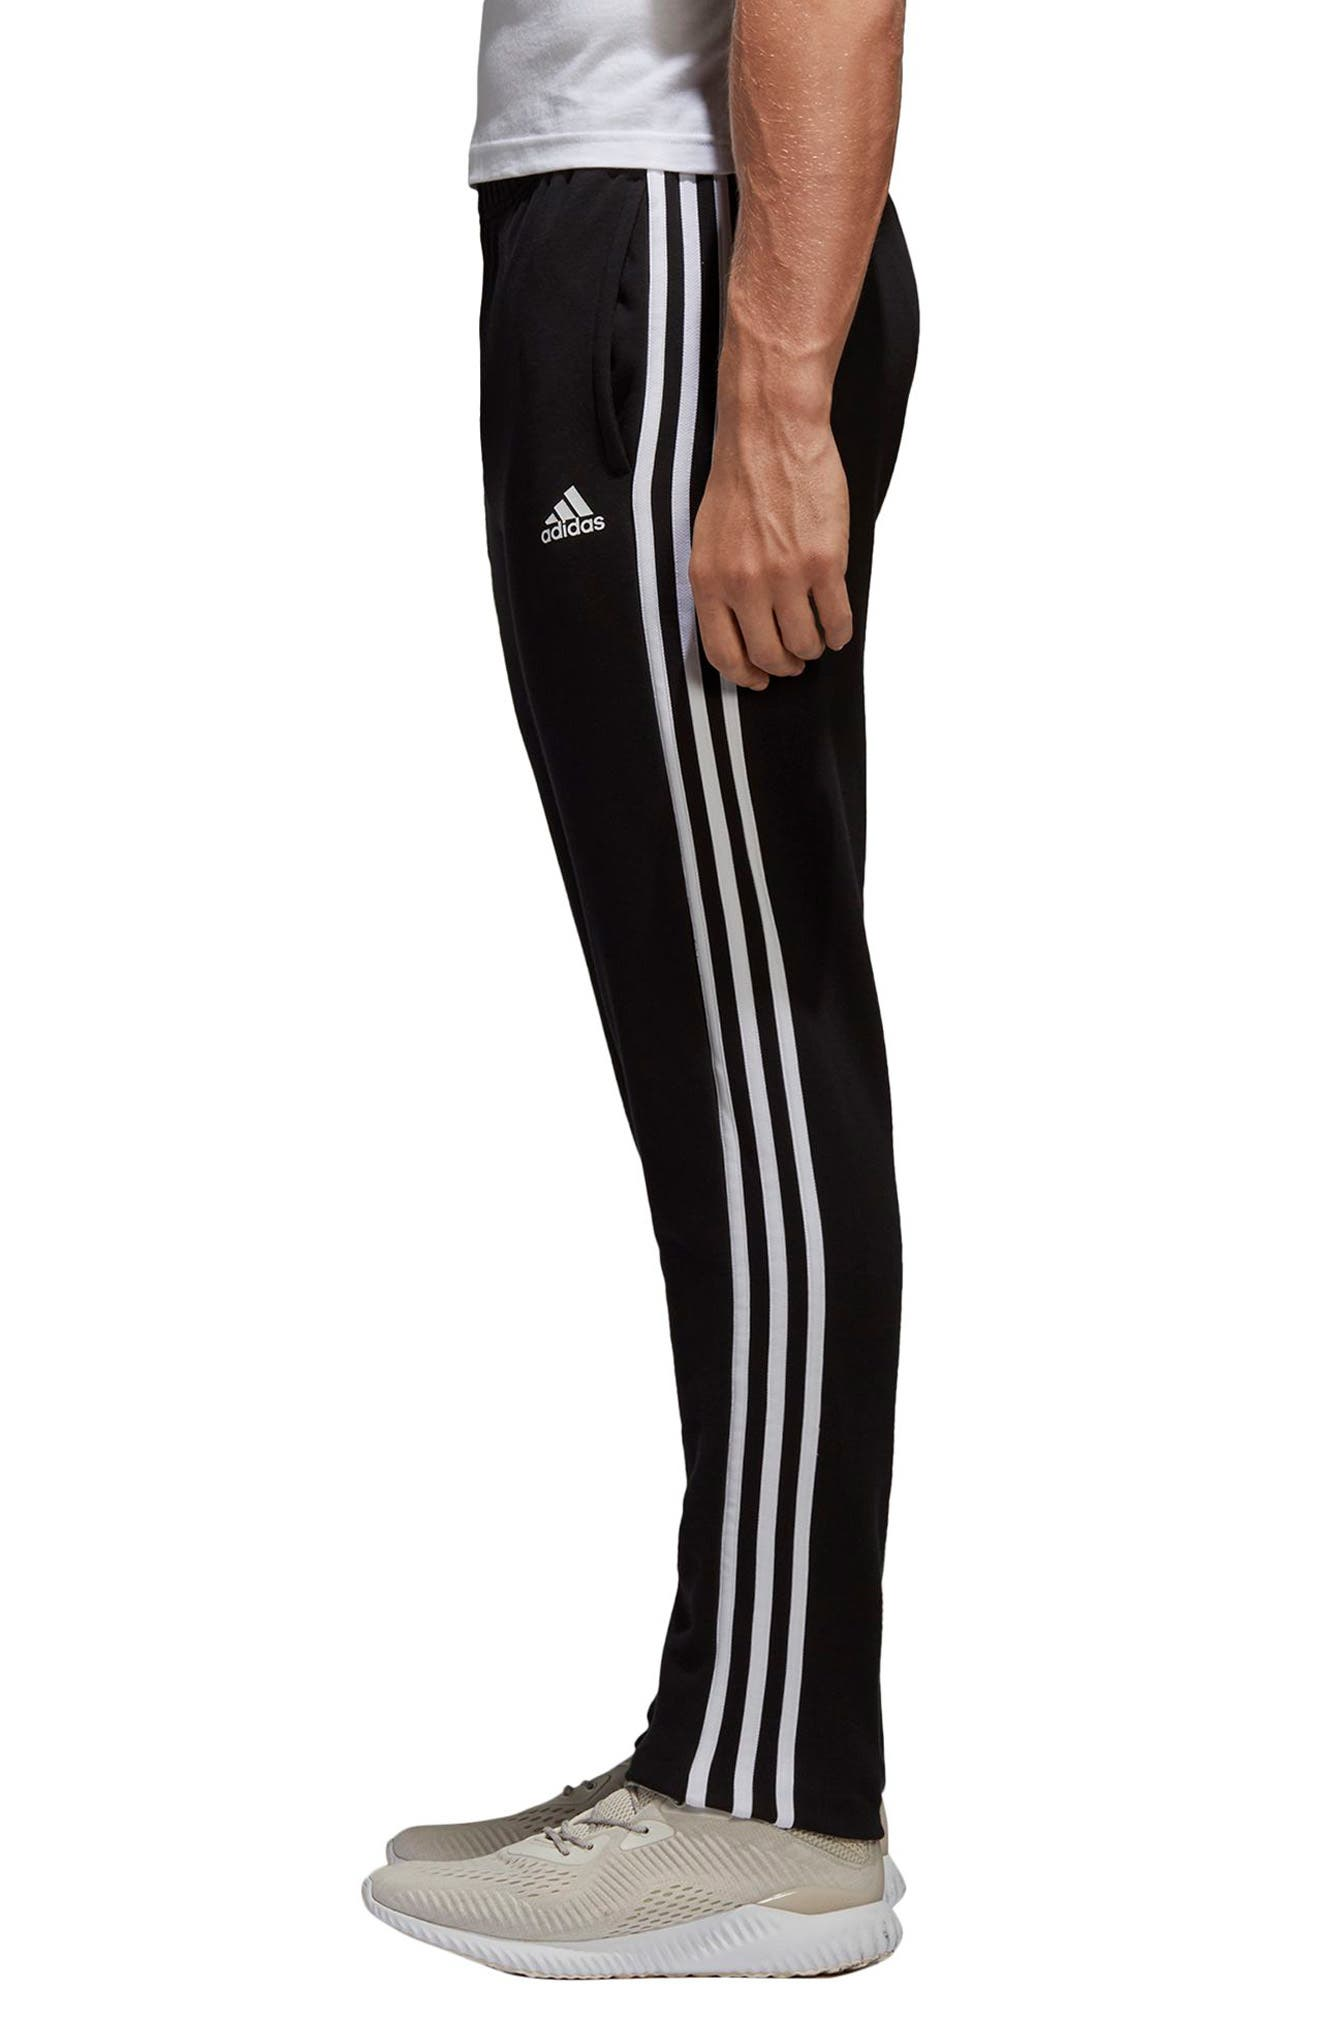 Essentials 3-Stripes Regular Fit Sweatpants,                             Alternate thumbnail 3, color,                             BLACK/ WHITE